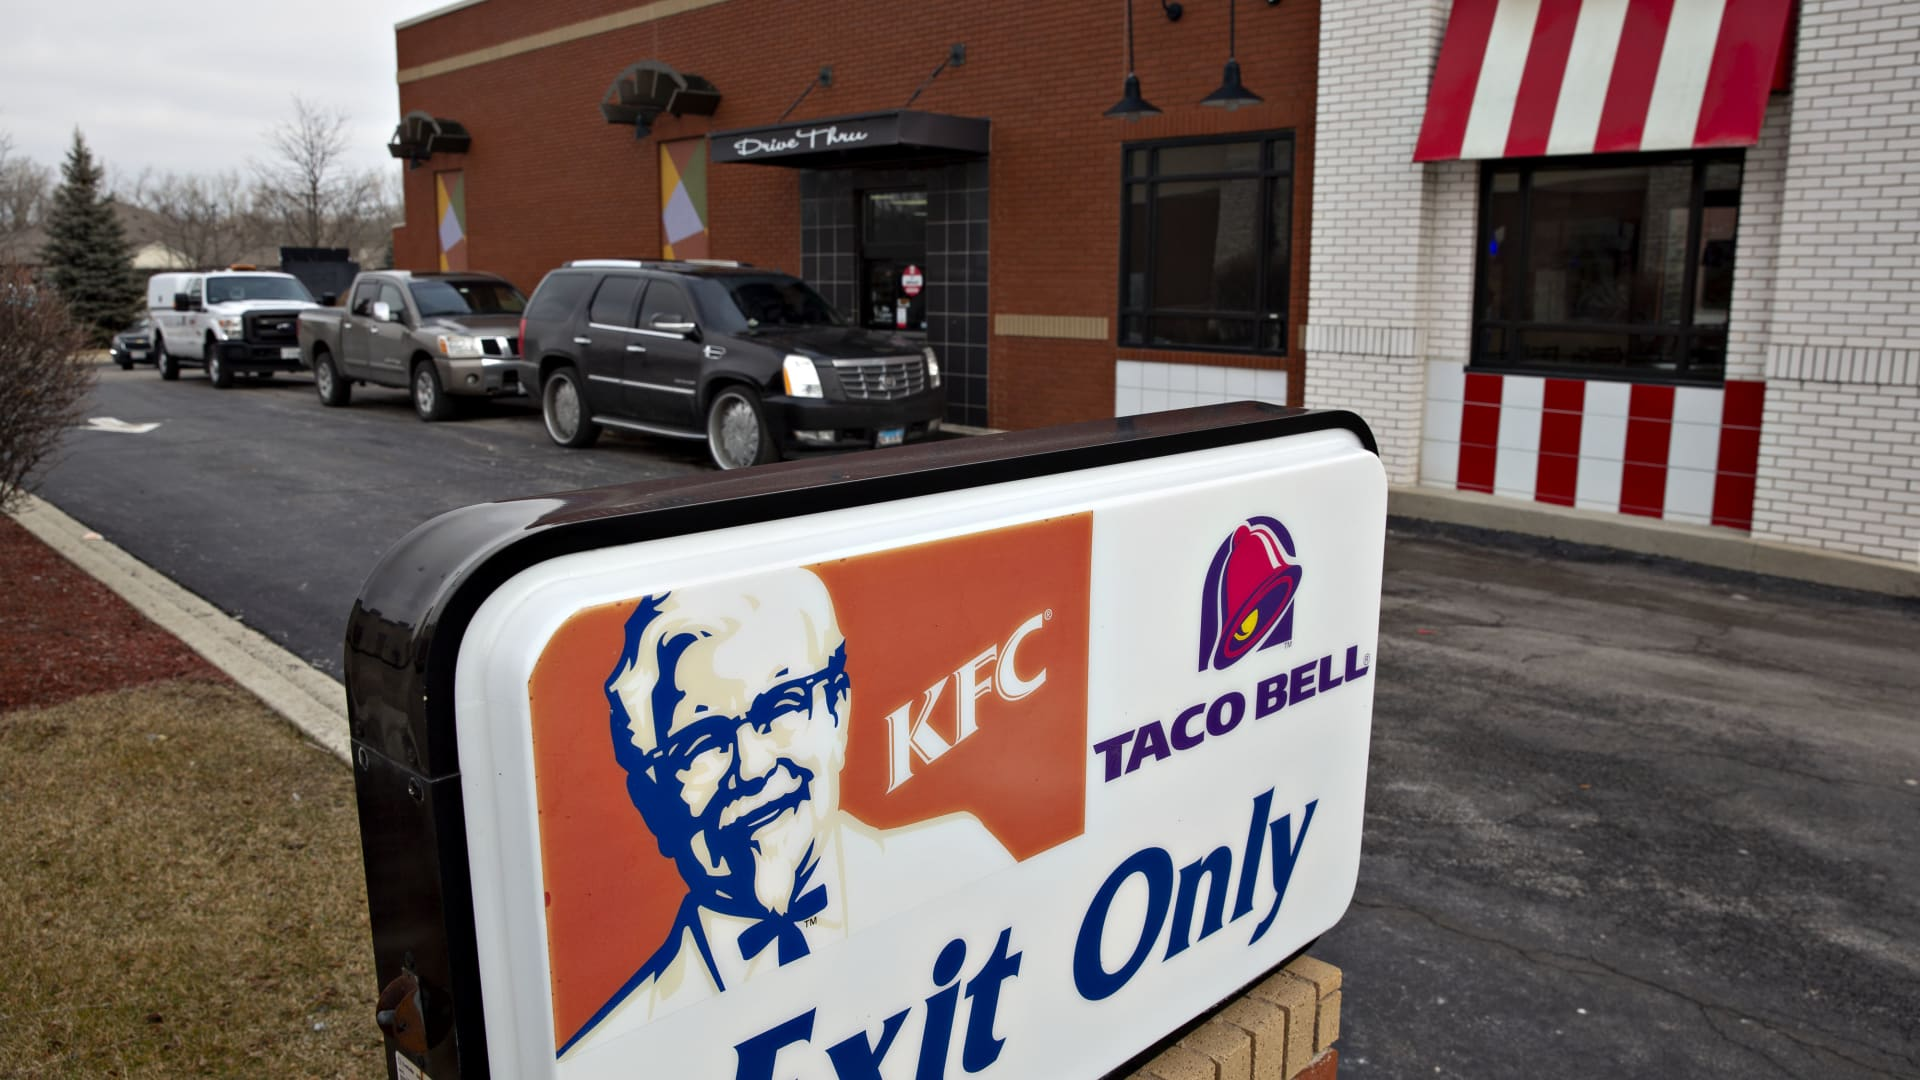 Vehicles wait in line at the drive through lane of a Yum! Brands Inc. Kentucky Fried Chicken (KFC) and Taco Bell restaurant in Lockport, Illinois, U.S.